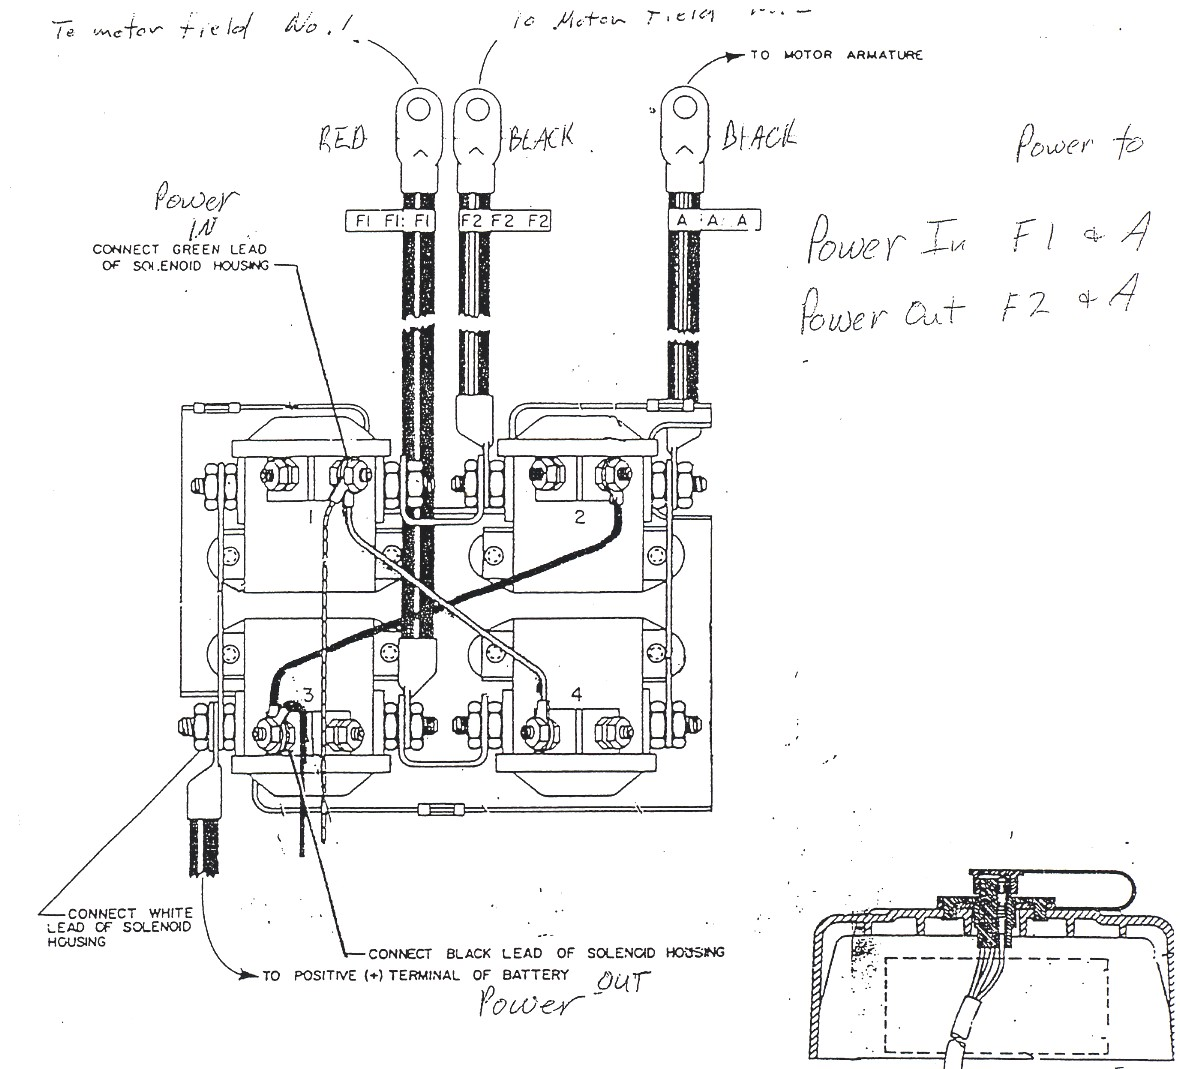 fan wiring diagram on 2005 polaris ranger fan wiring diagrams online fan wiring diagram on 2005 polaris ranger fan discover your